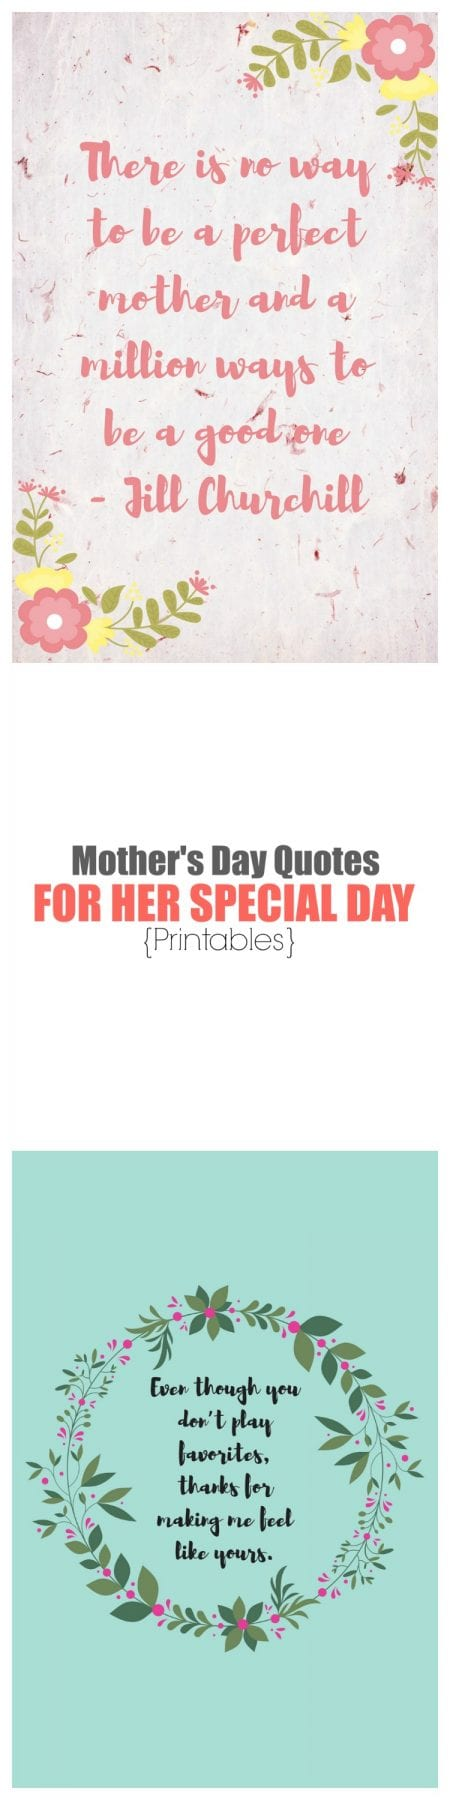 5 mothers day quotes for her special day printables mom fabulous print out these mothers day quotes to frame or put it in a card for her altavistaventures Images